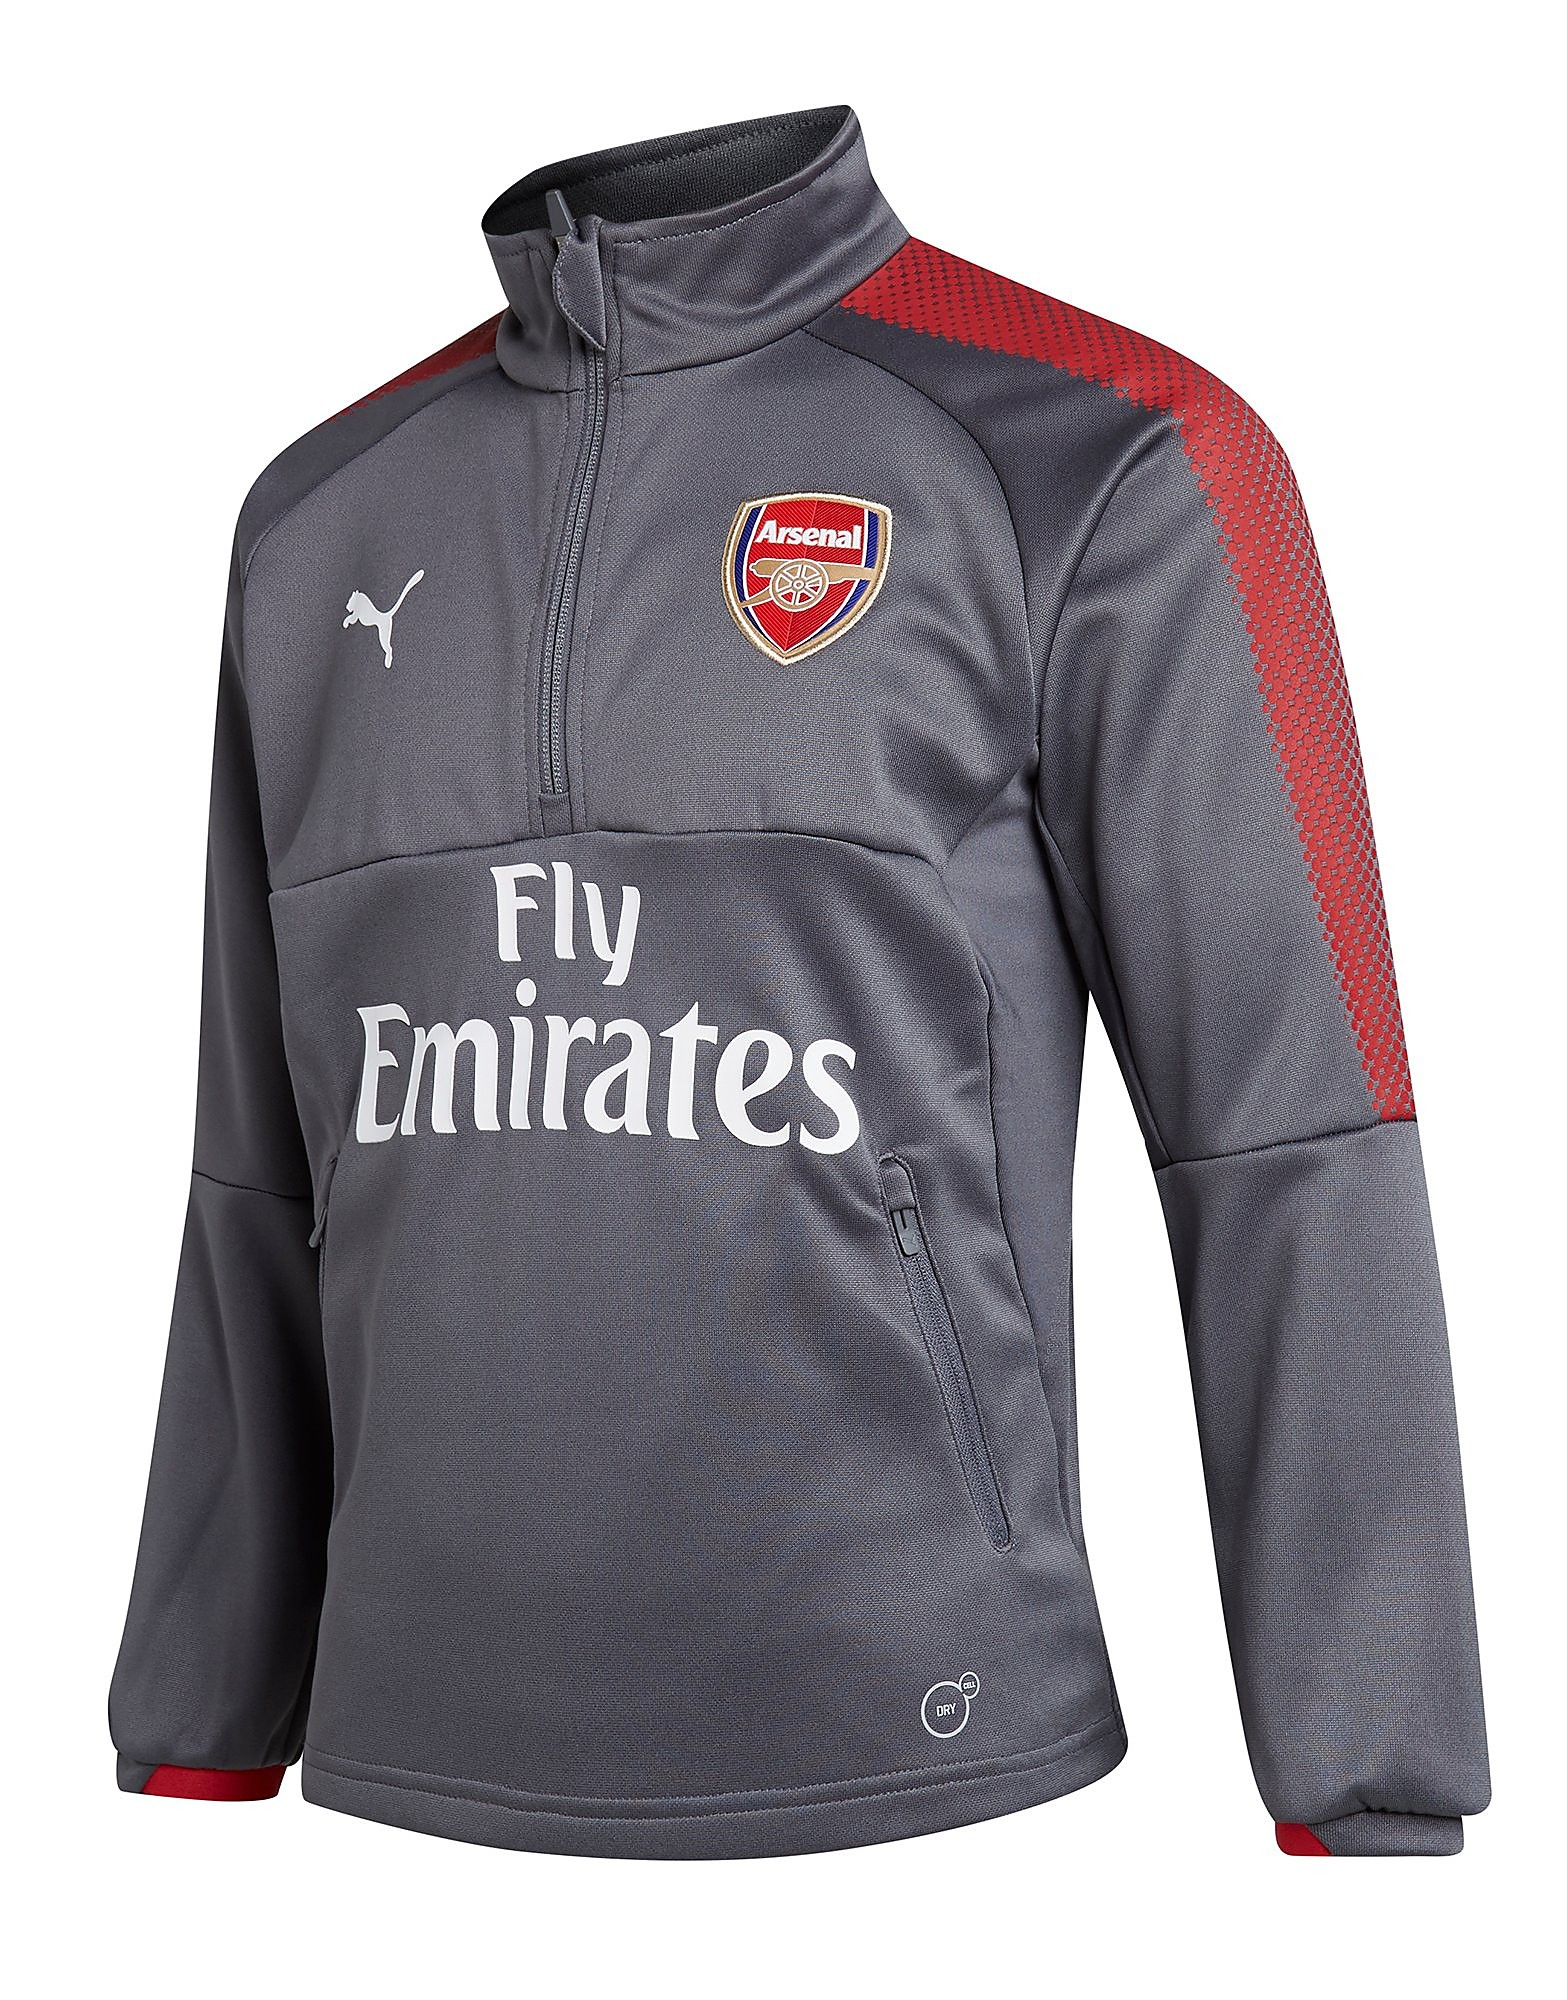 PUMA Arsenal 2017 Quarter Zip Training Top Junior